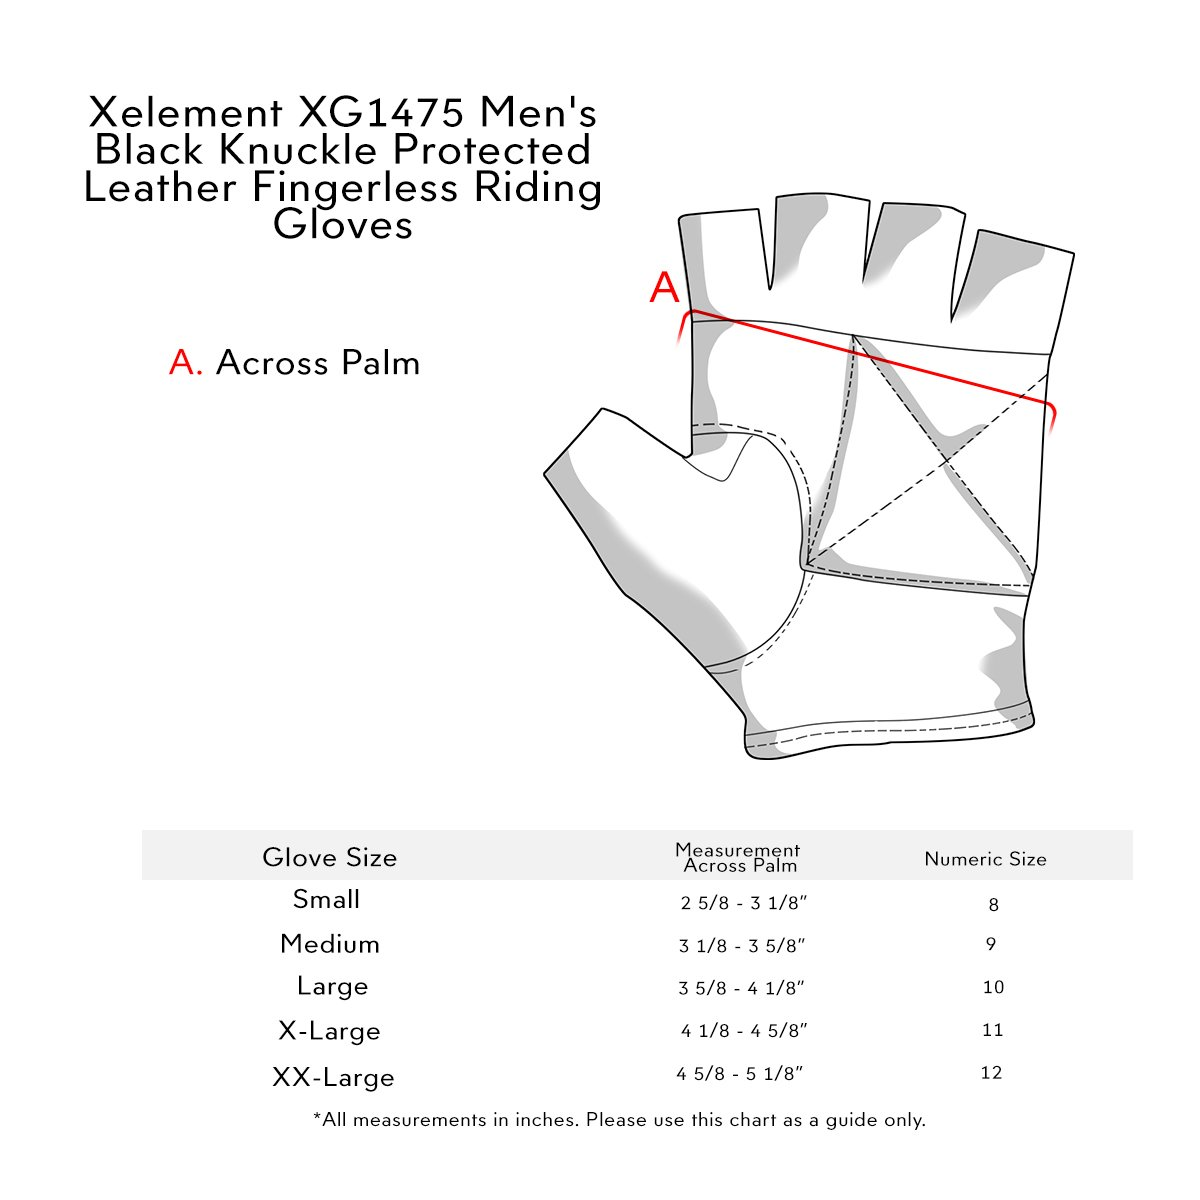 Xelement XG1475 Mens Black Knuckle Protected Leather Fingerless Riding Gloves - 2X-Large